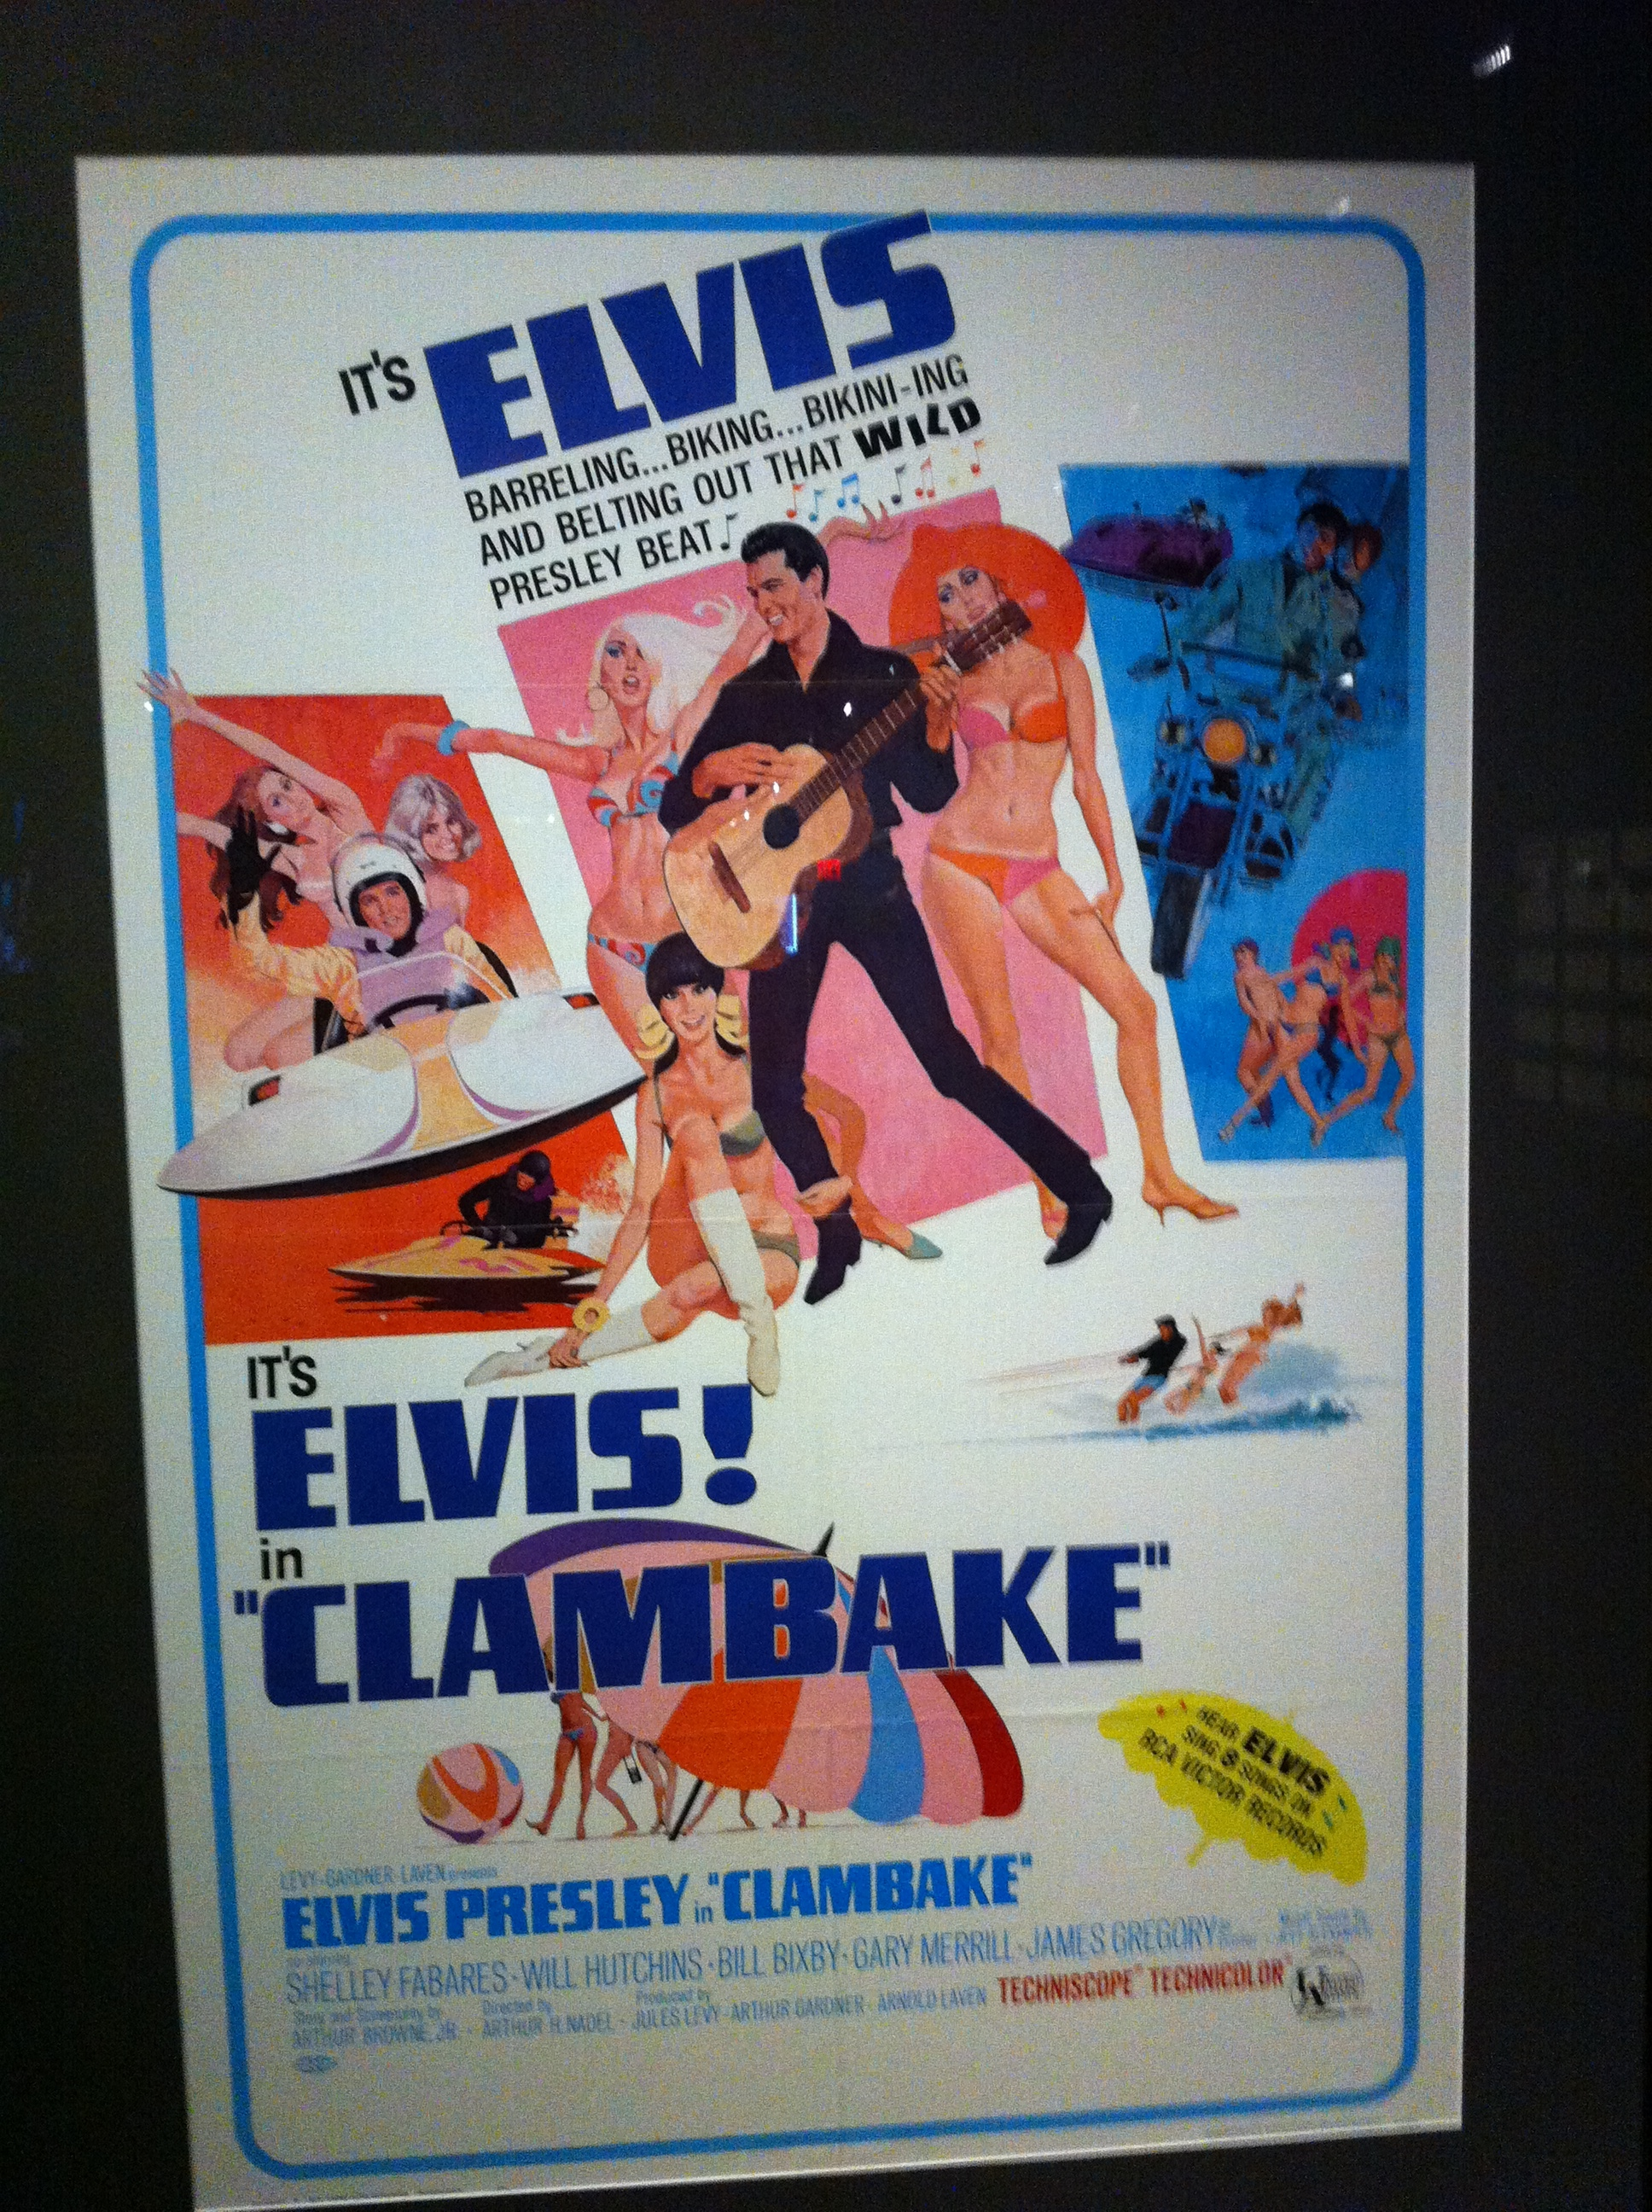 There are lots of movie posters in the Graceland tour.